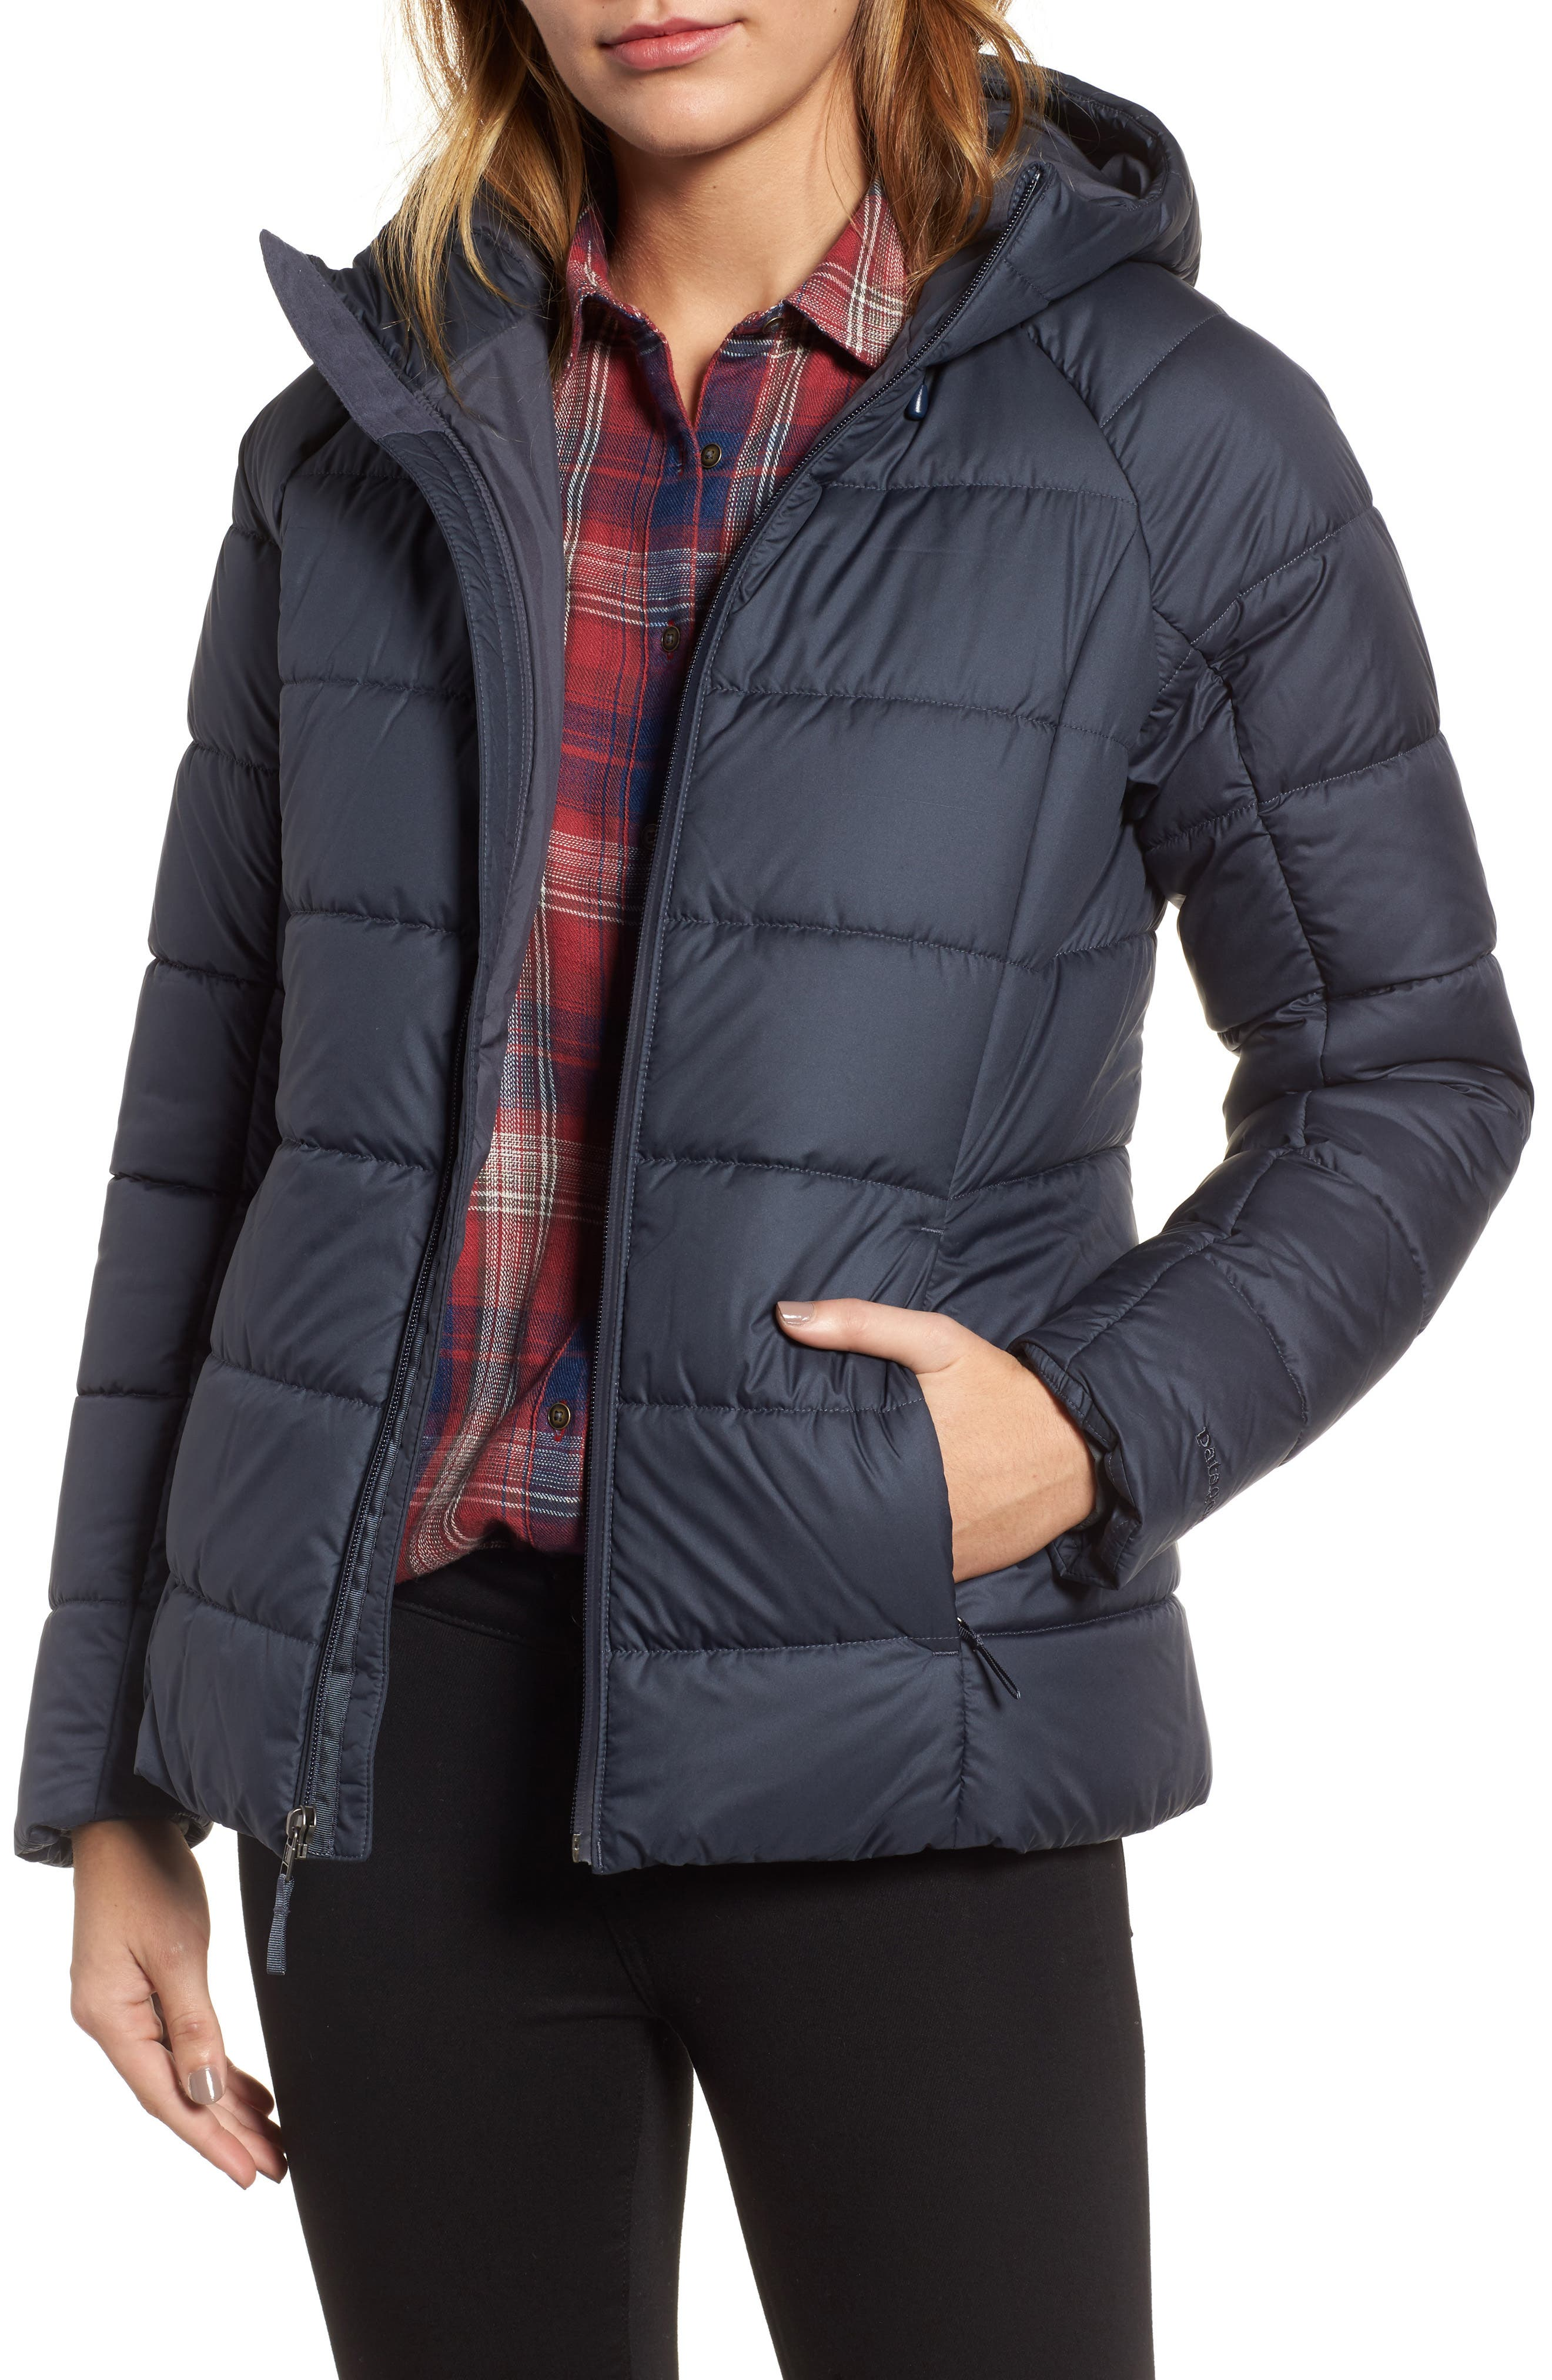 Patagonia Transitional HyperDAS™ Insulated Jacket